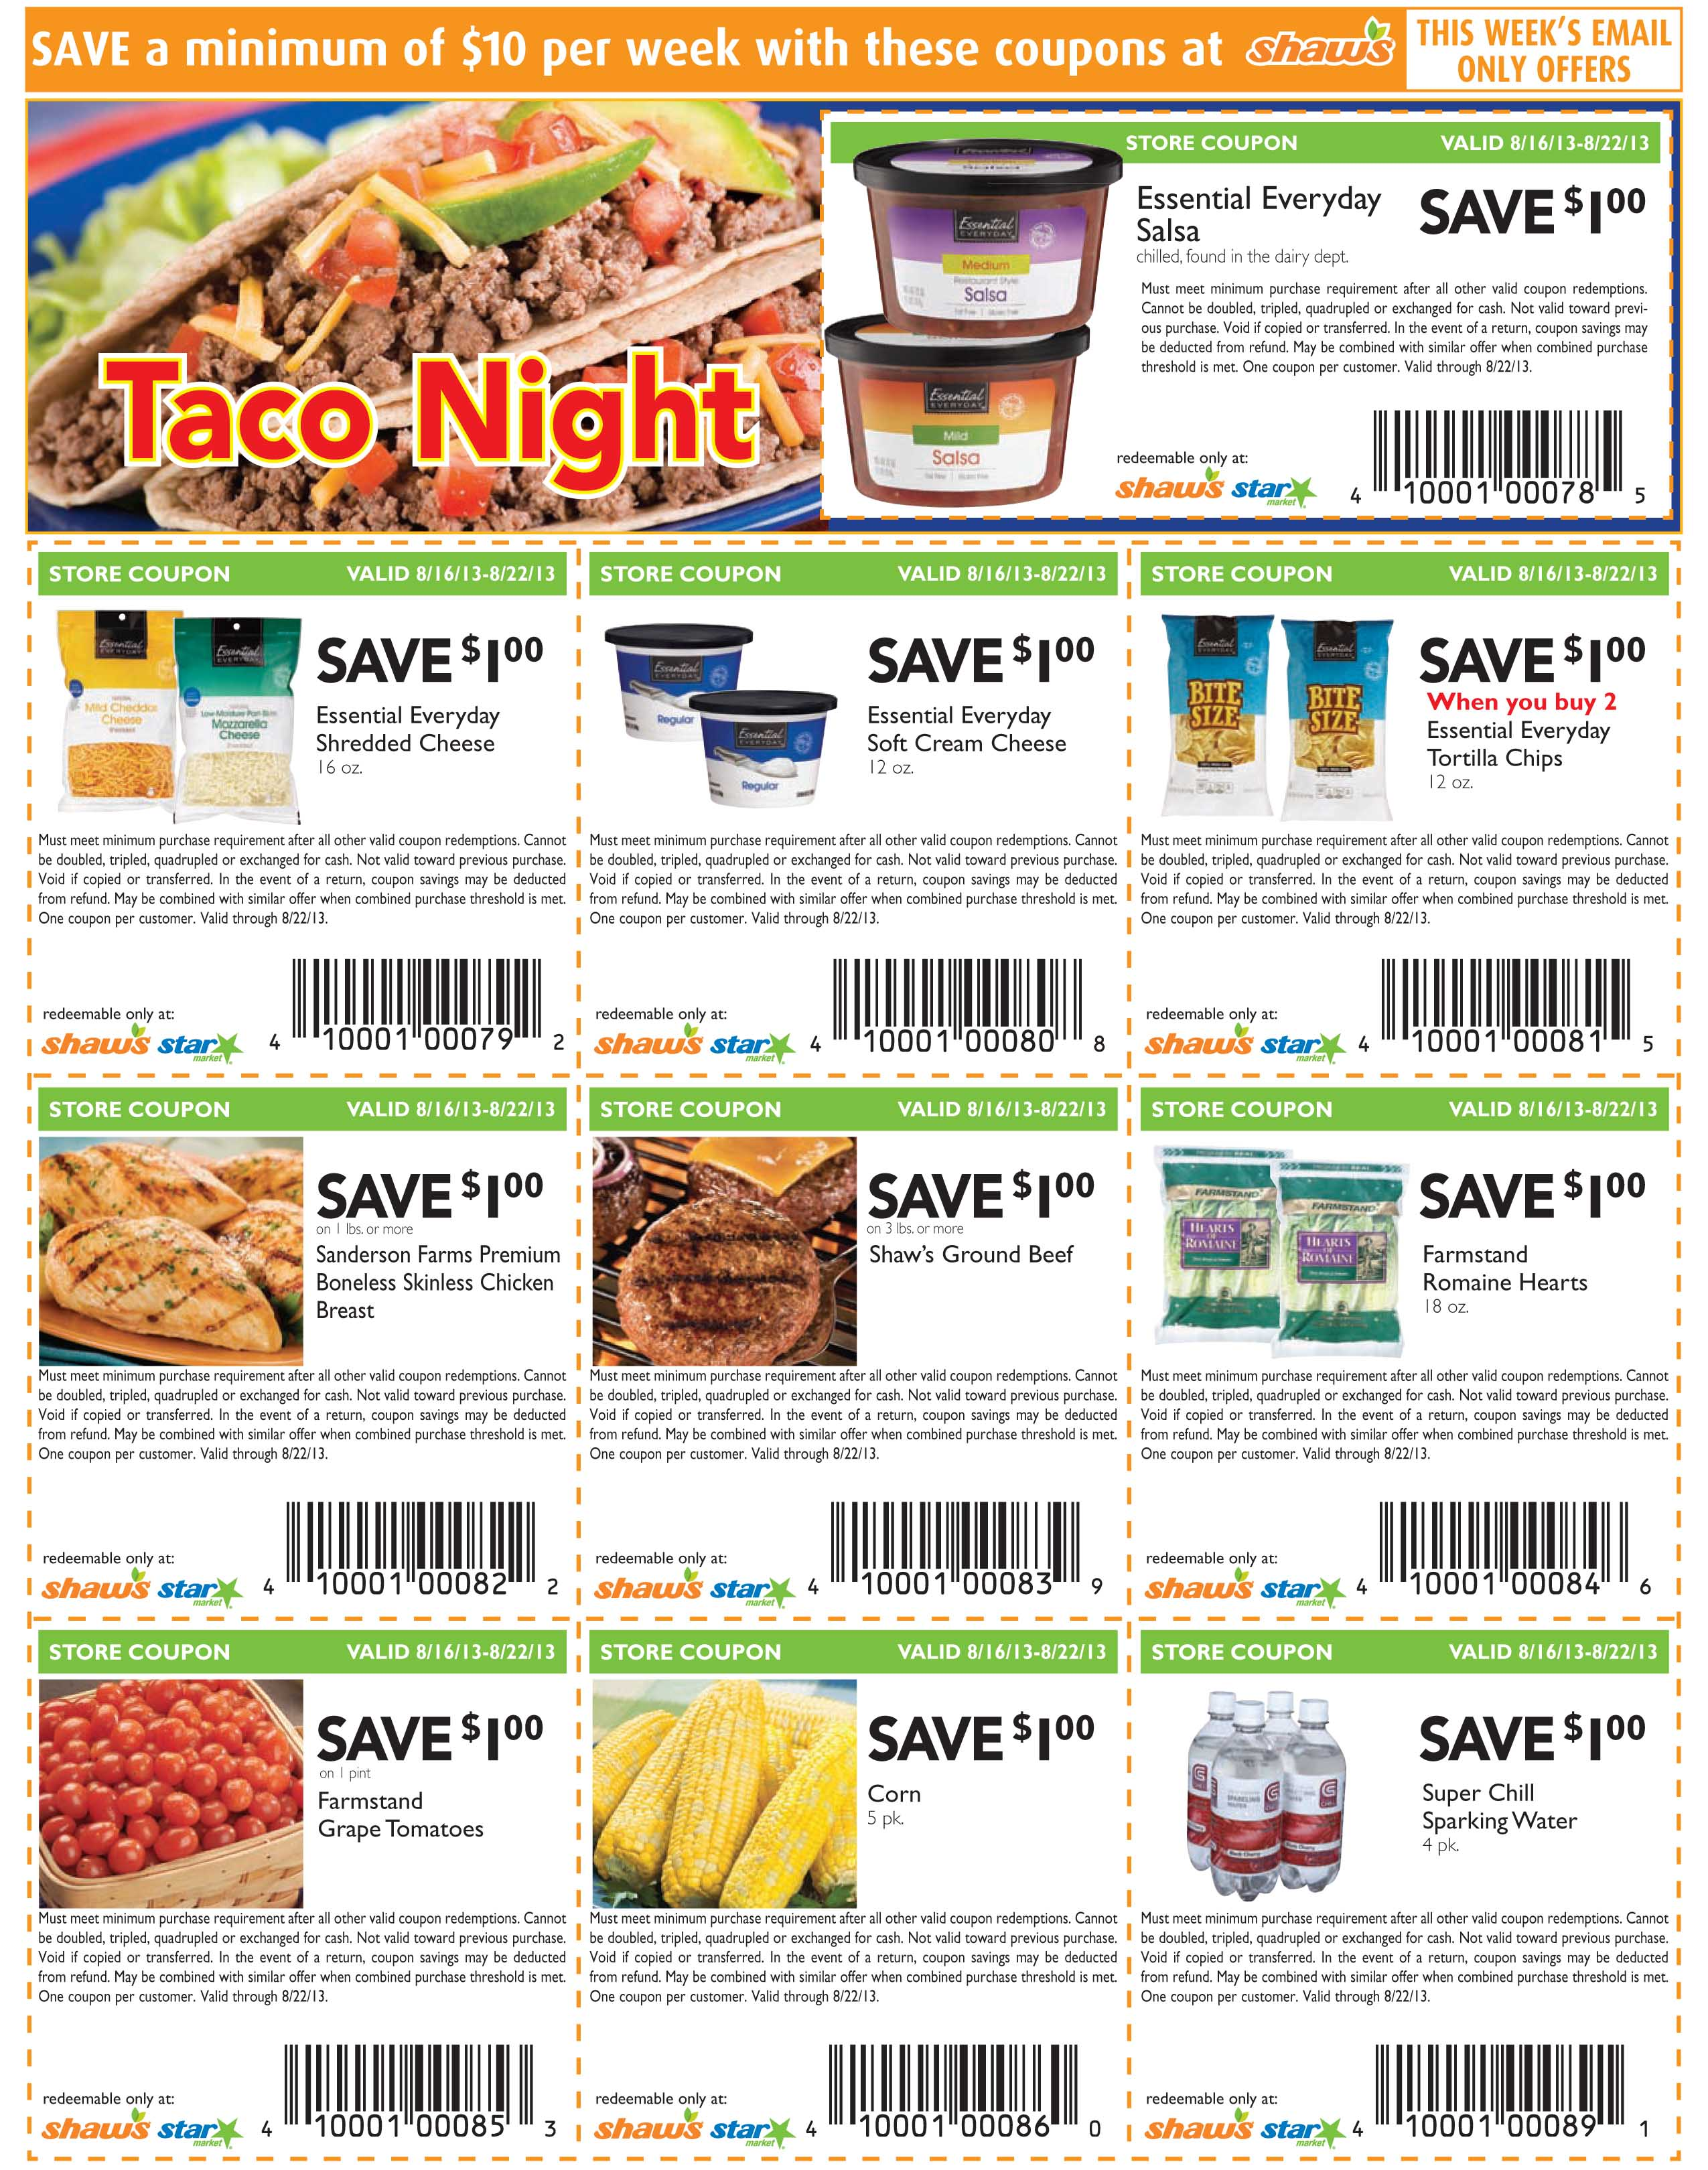 May 19,  · Printable Coupons For Grocery Stores. We all have our favorite grocery stores, make sure you check the coupons that they offer. Almost every grocery store offers coupons for their store. Plus you can combine them with other coupons for more savings depending on their coupon policy. Below is a list of stores that offer printable coupons.5/5(10).